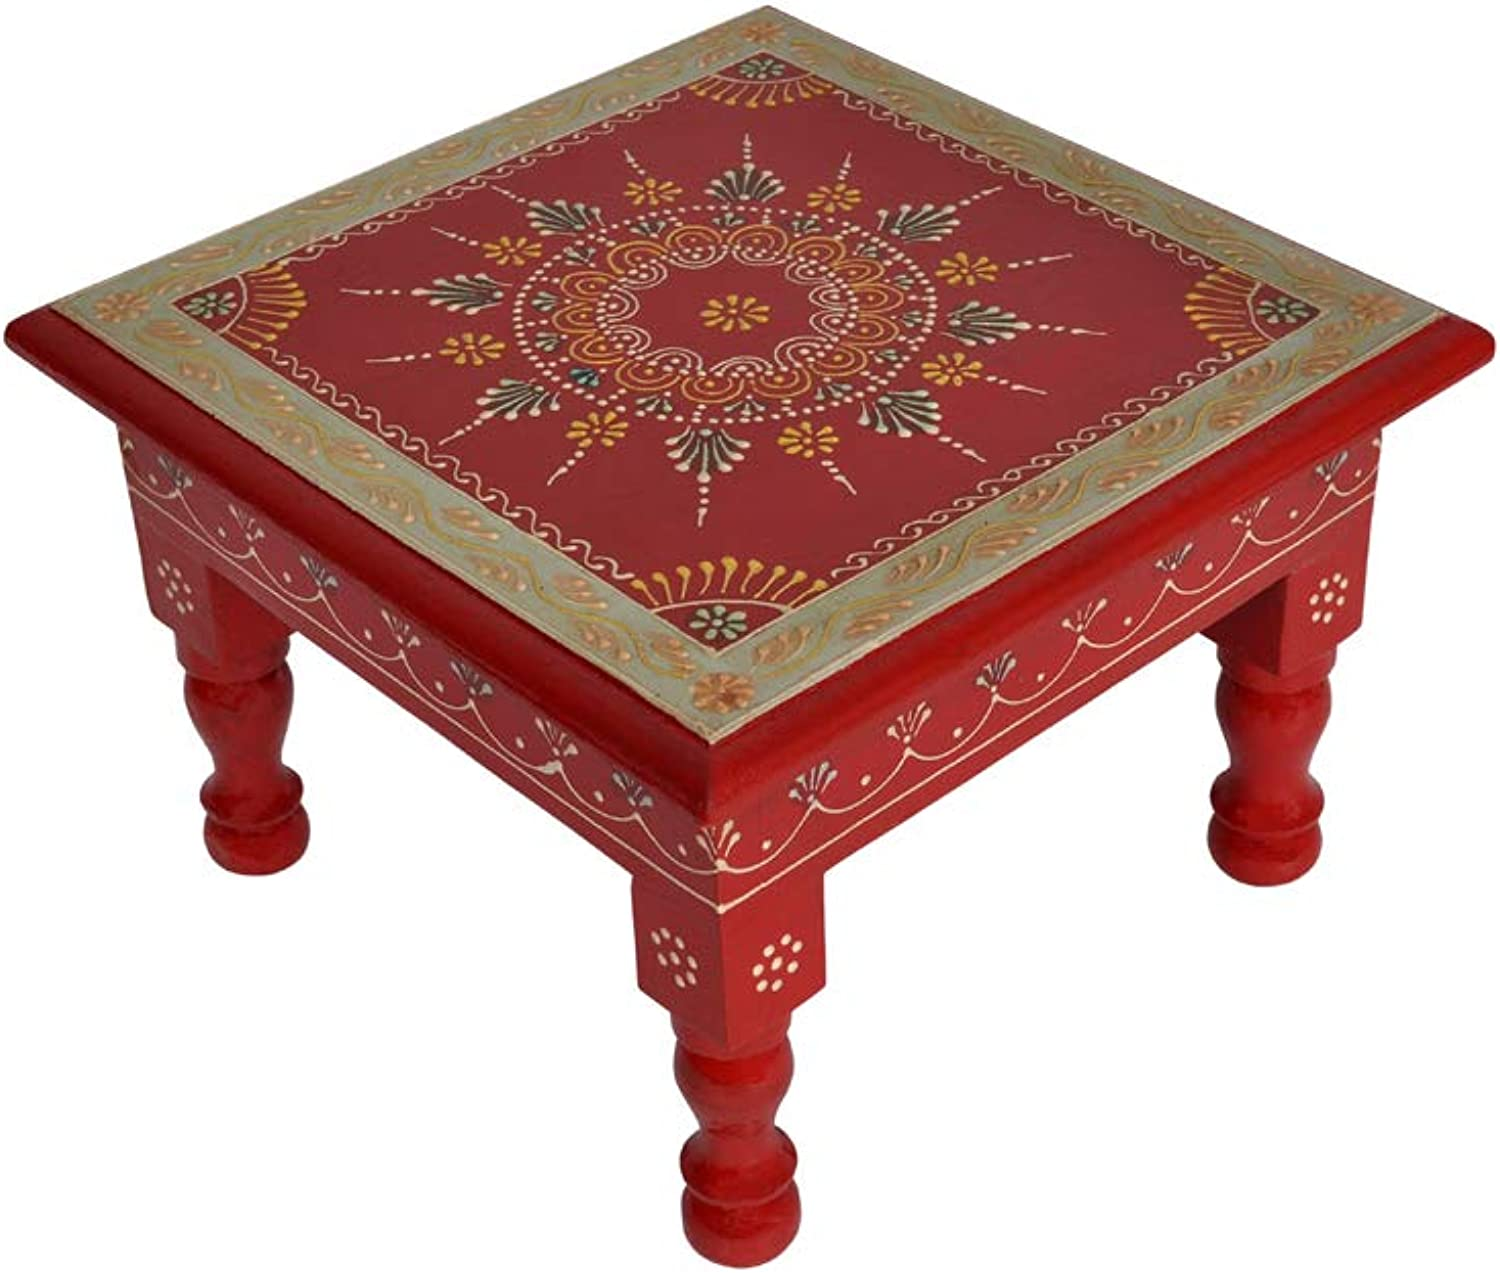 Lalhaveli Ethnic Handpained Work Design Indian Wooden Decorative Stool End Table 9 X 9 X 5.5 Inches